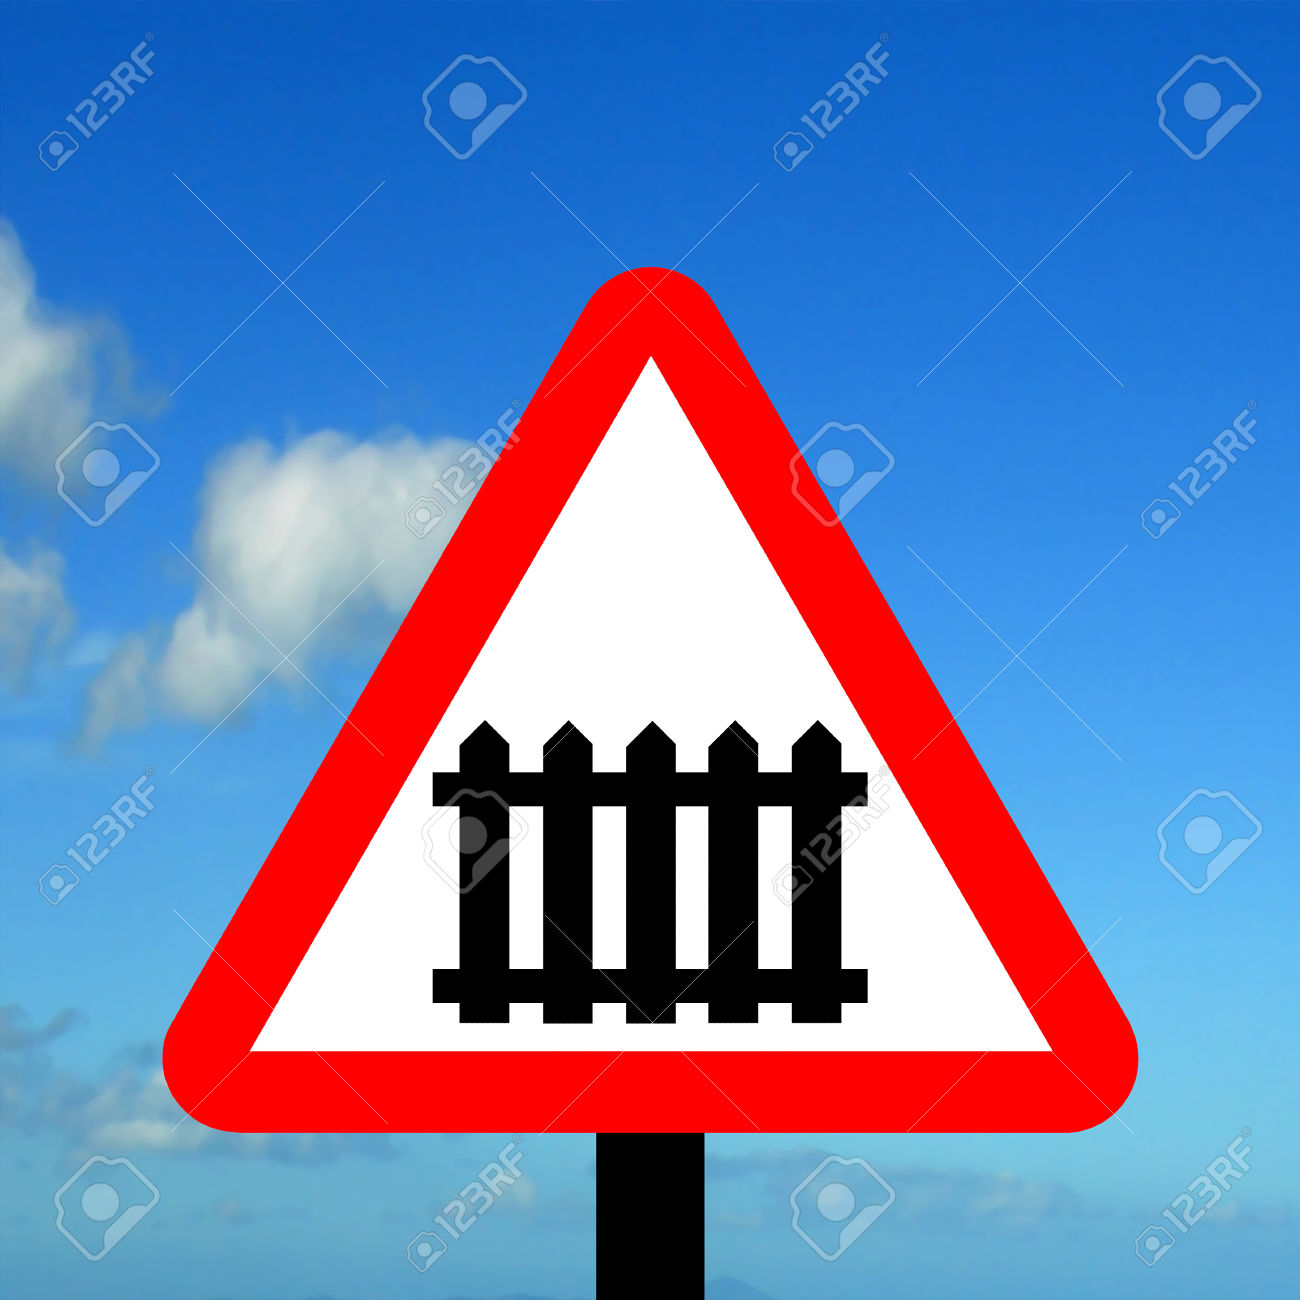 Warning Triangle Level Crossing With Barrier Or Gate Ahead Stock.